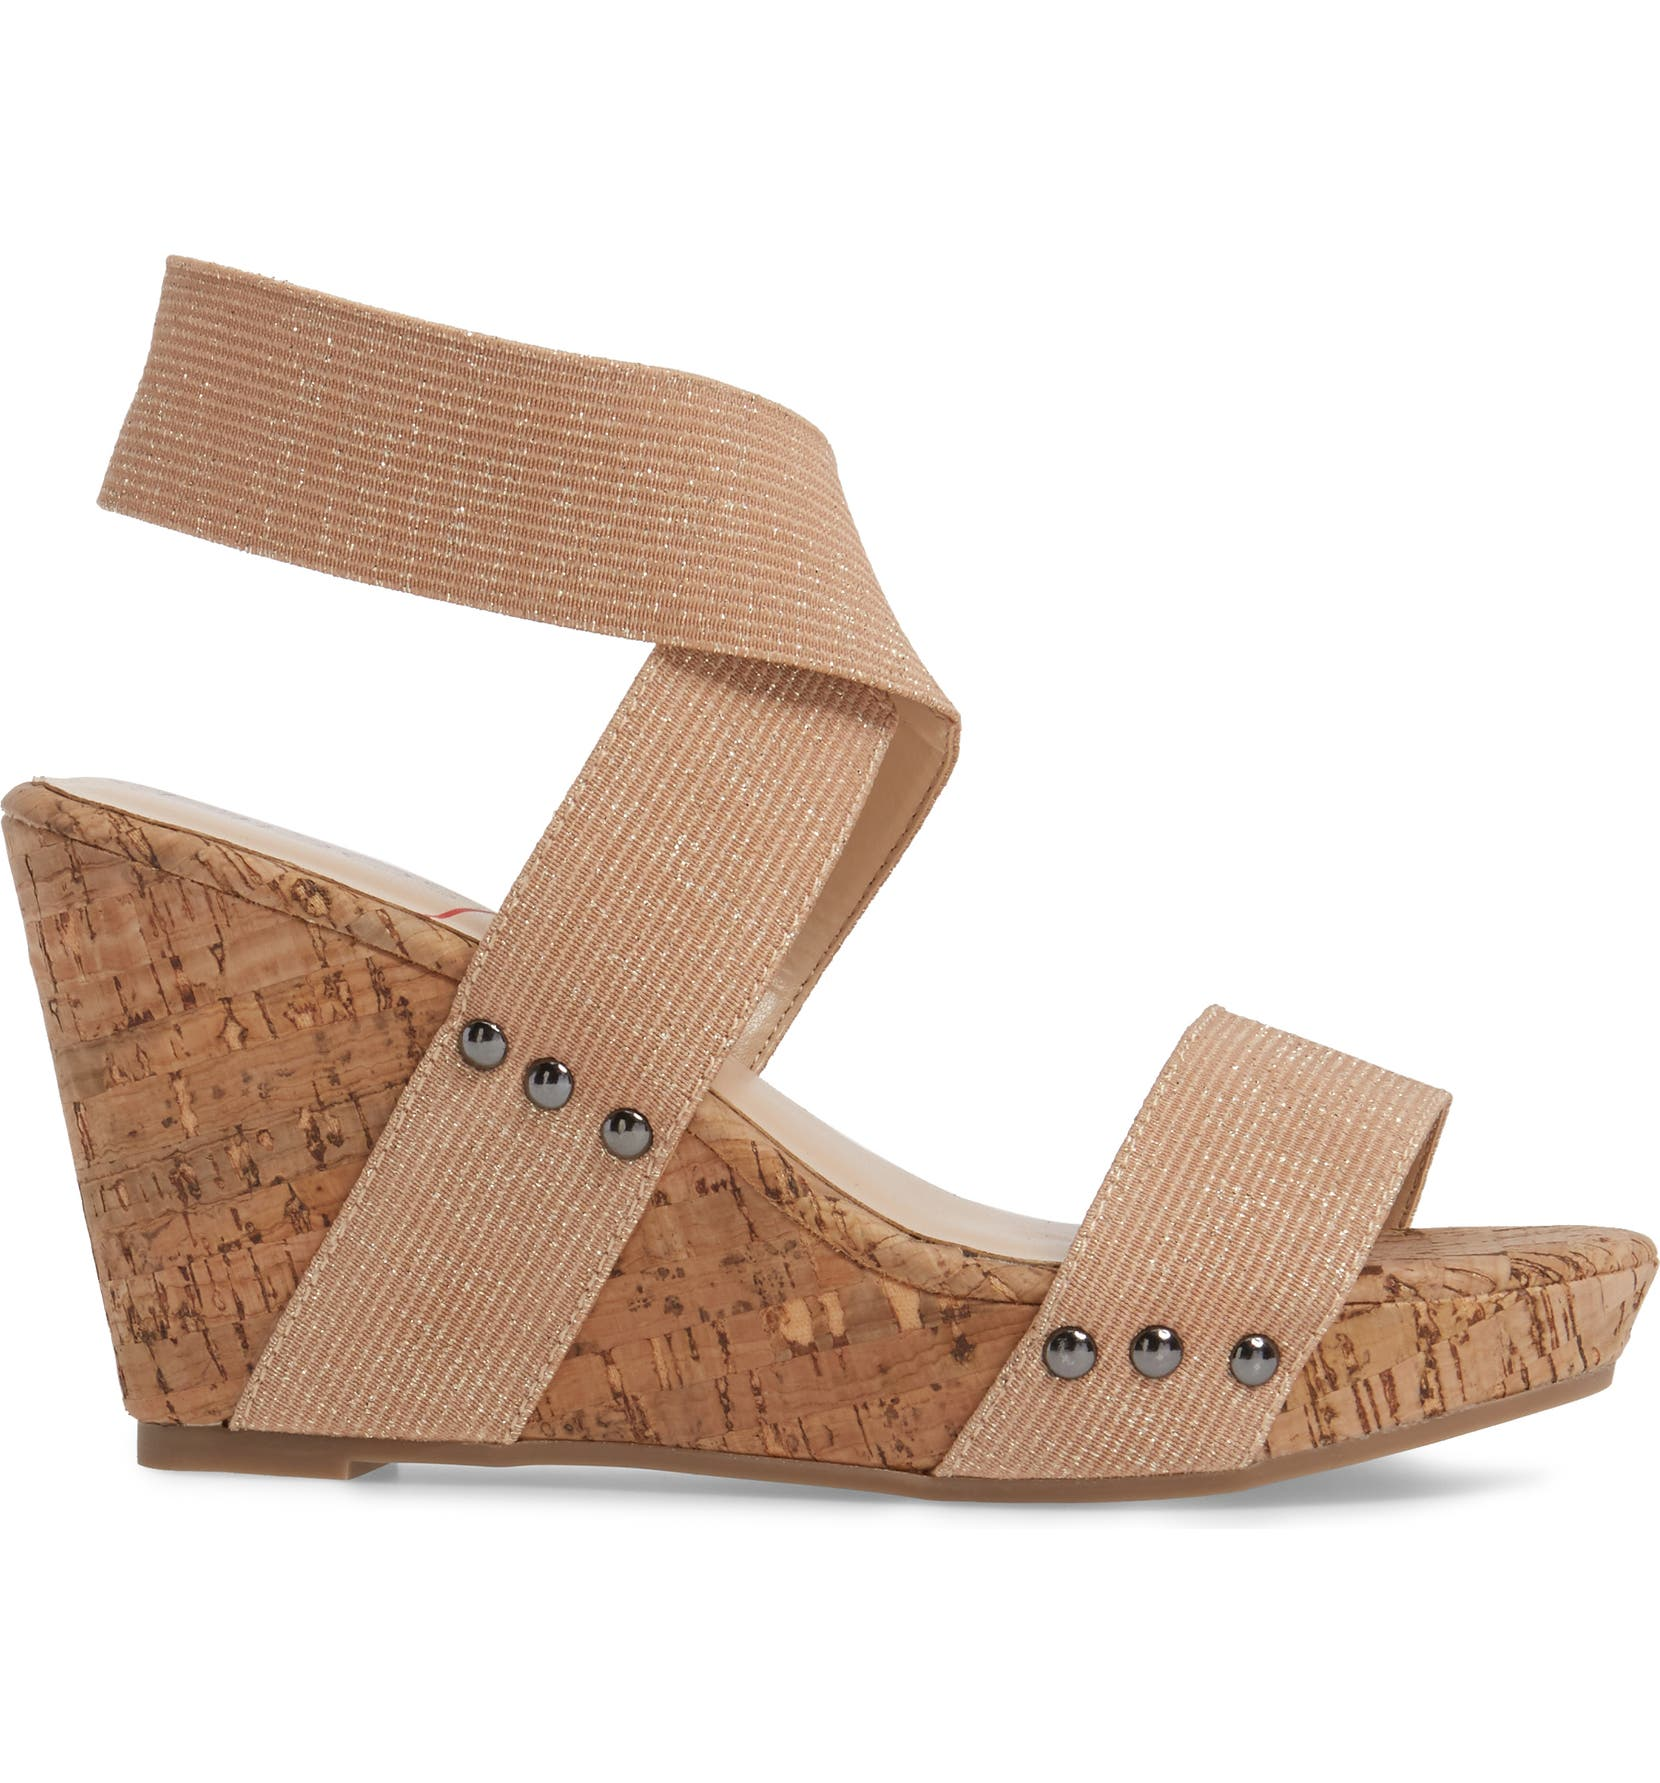 d3a86abaf9b Sole Society Analisa Platform Wedge Sandal (Women)